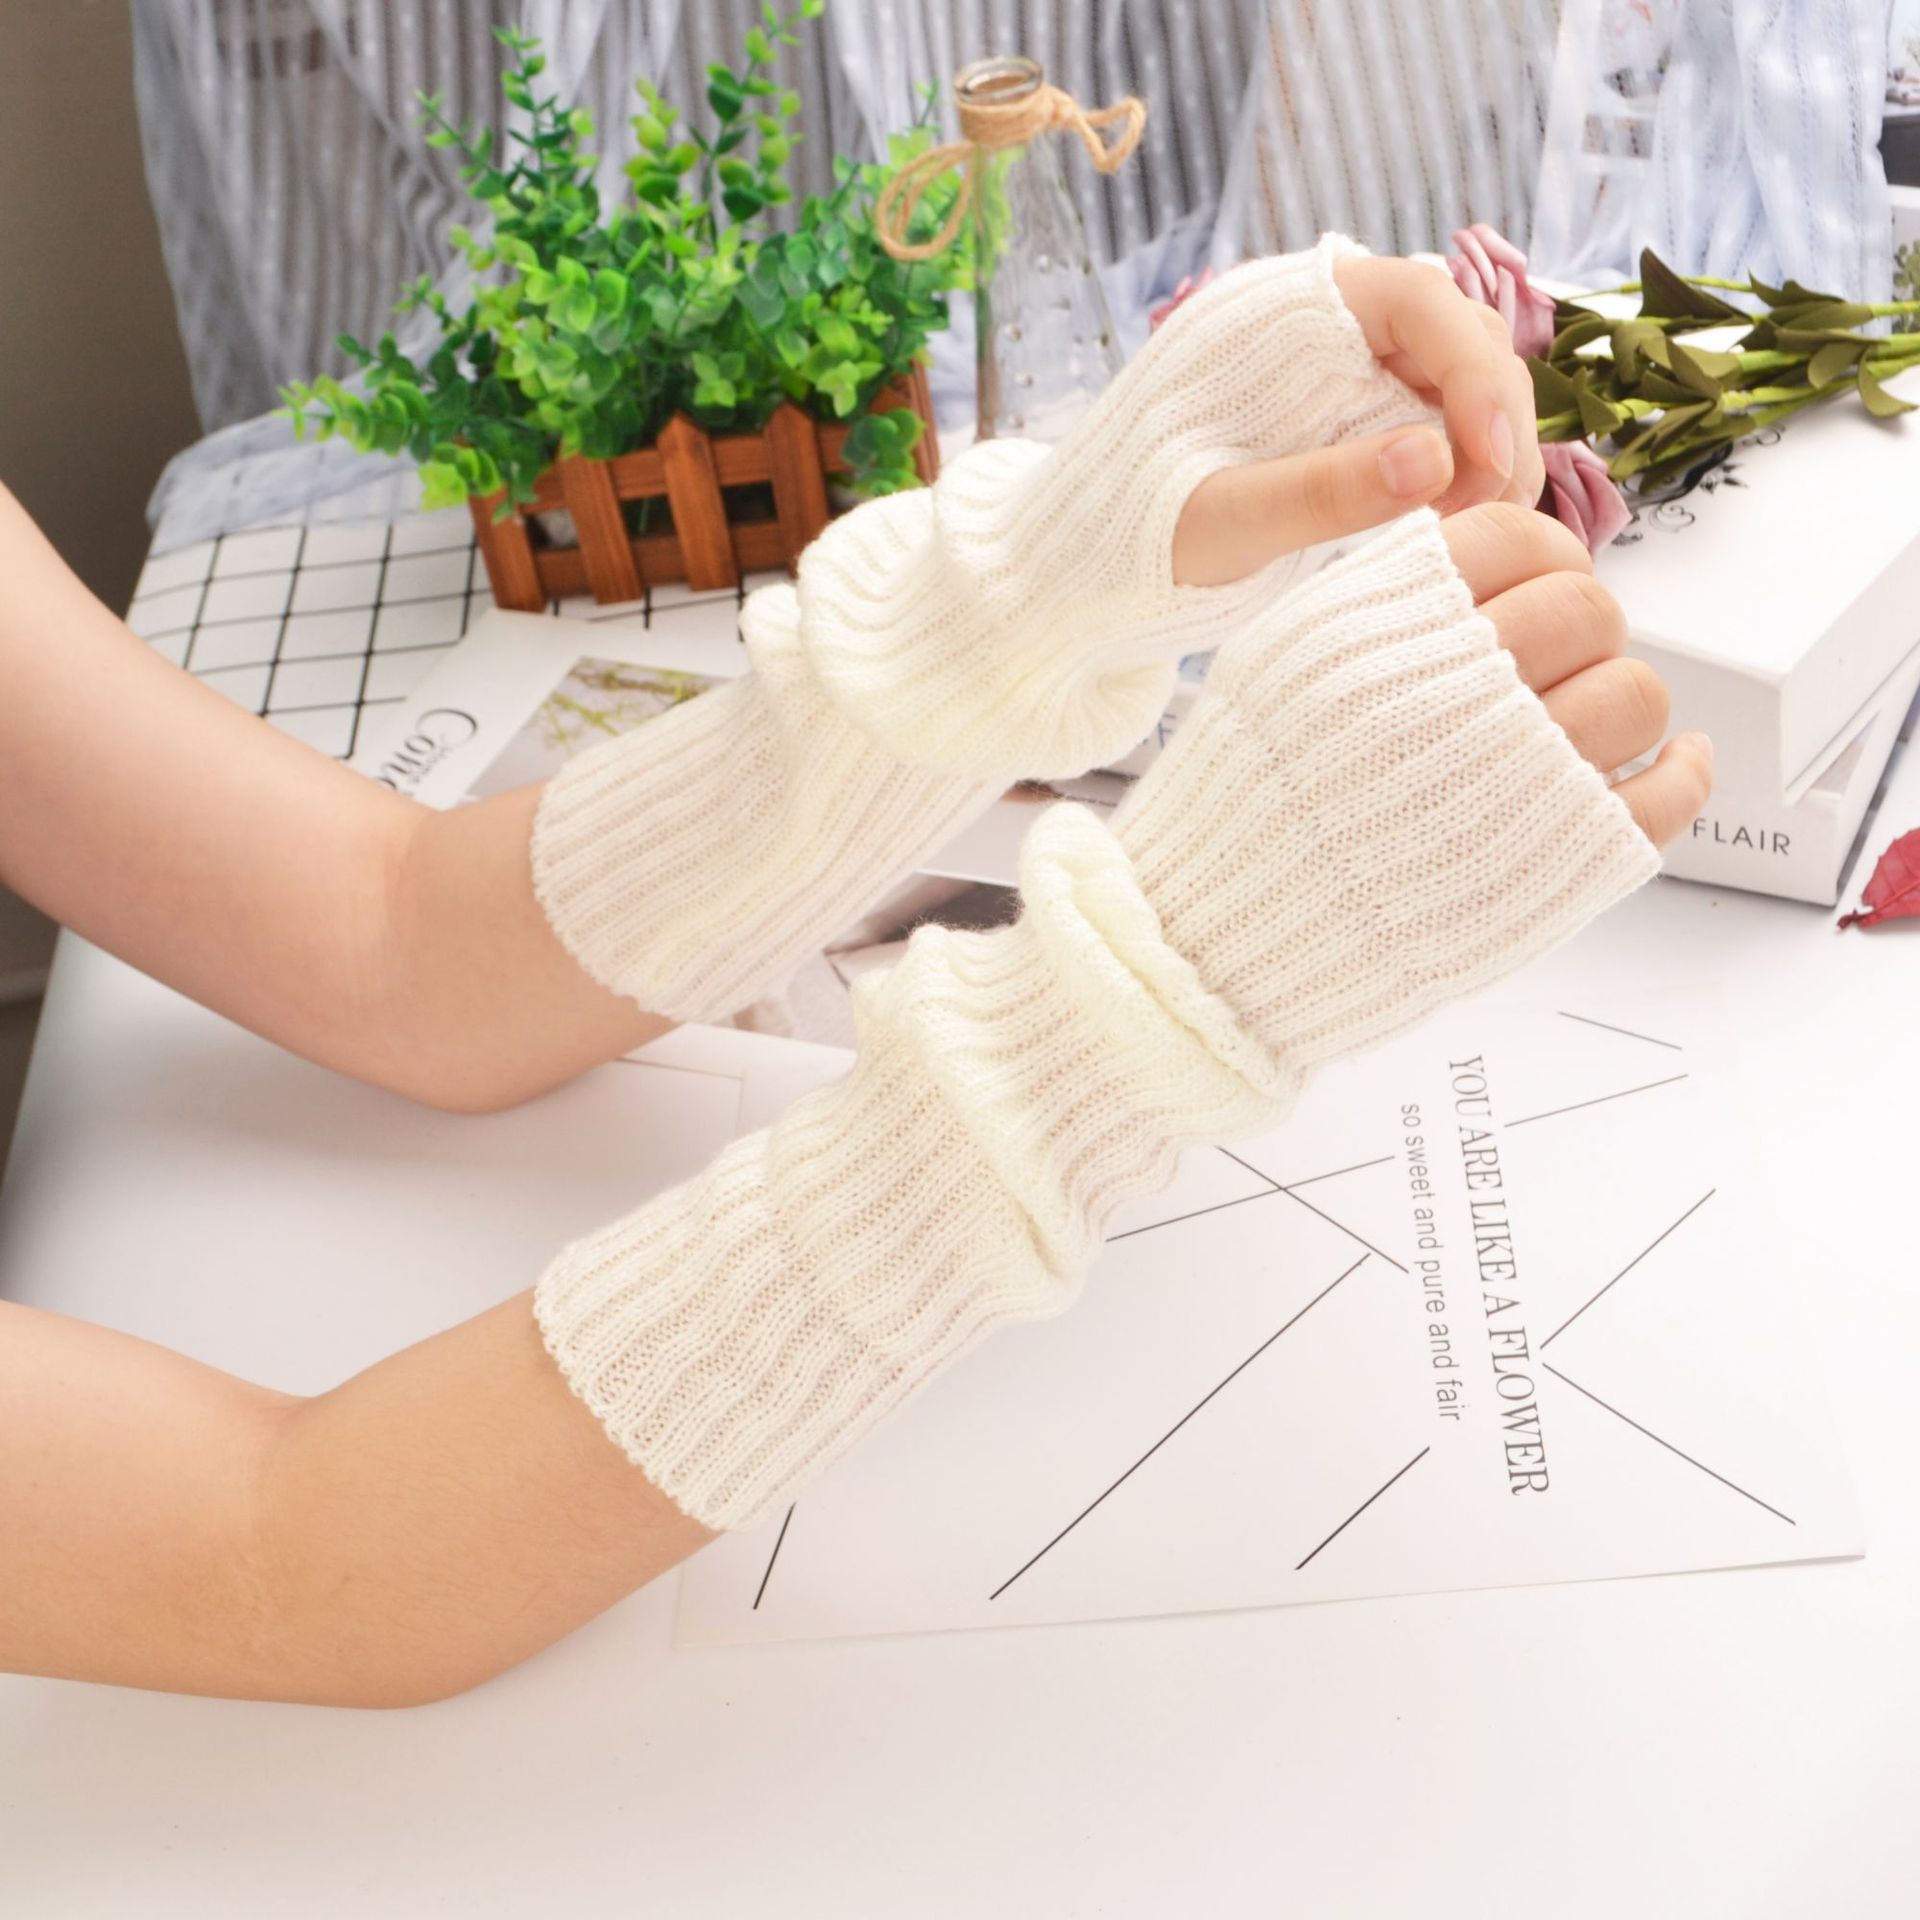 New Candy EMO Sleeve Knitted Honey Women's Warm Boys Girls Arm Wraps Couples Half Finger Cosplay Glo